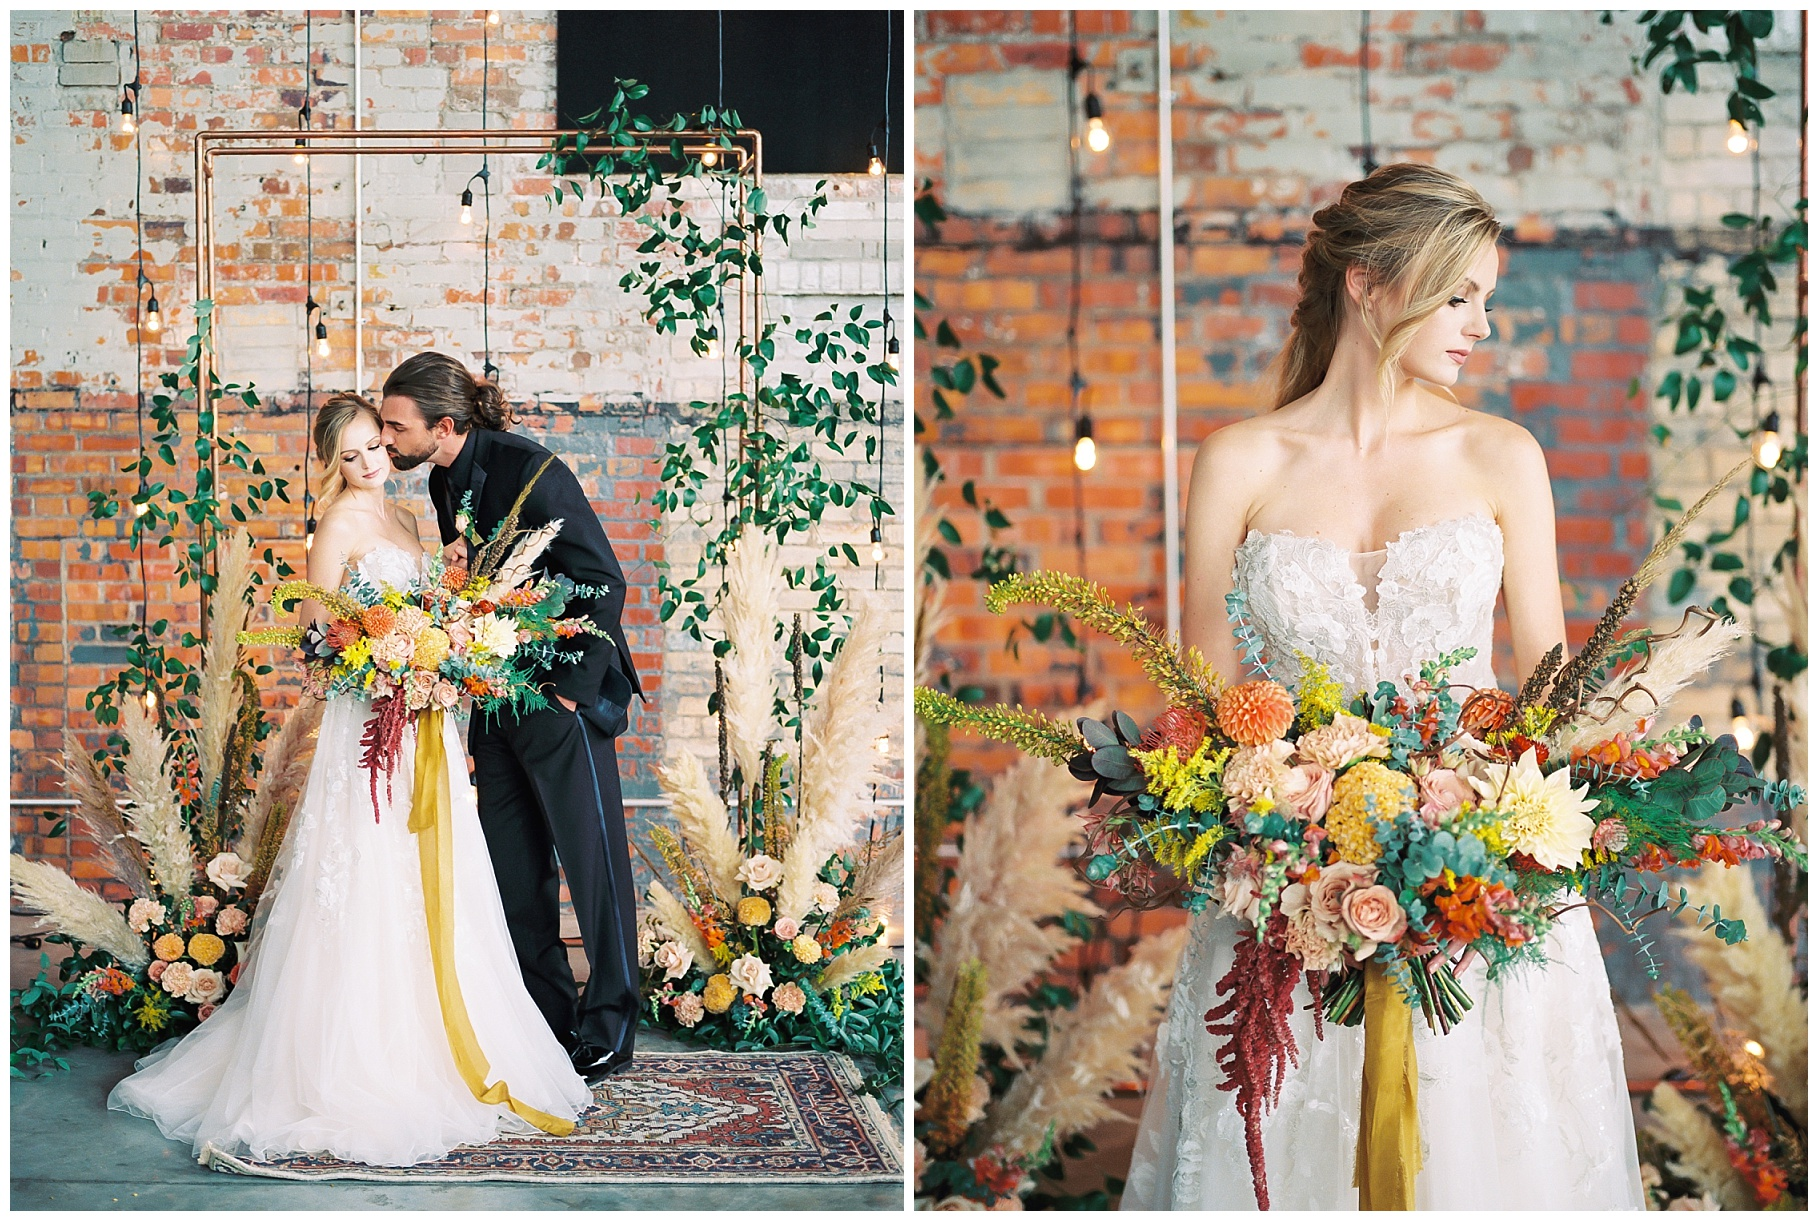 Urban Romance Wedding with Copper Accents at The Millbottom by Kelsi Kliethermes Photography Best Columbia Missouri Wedding Photographer_0062.jpg